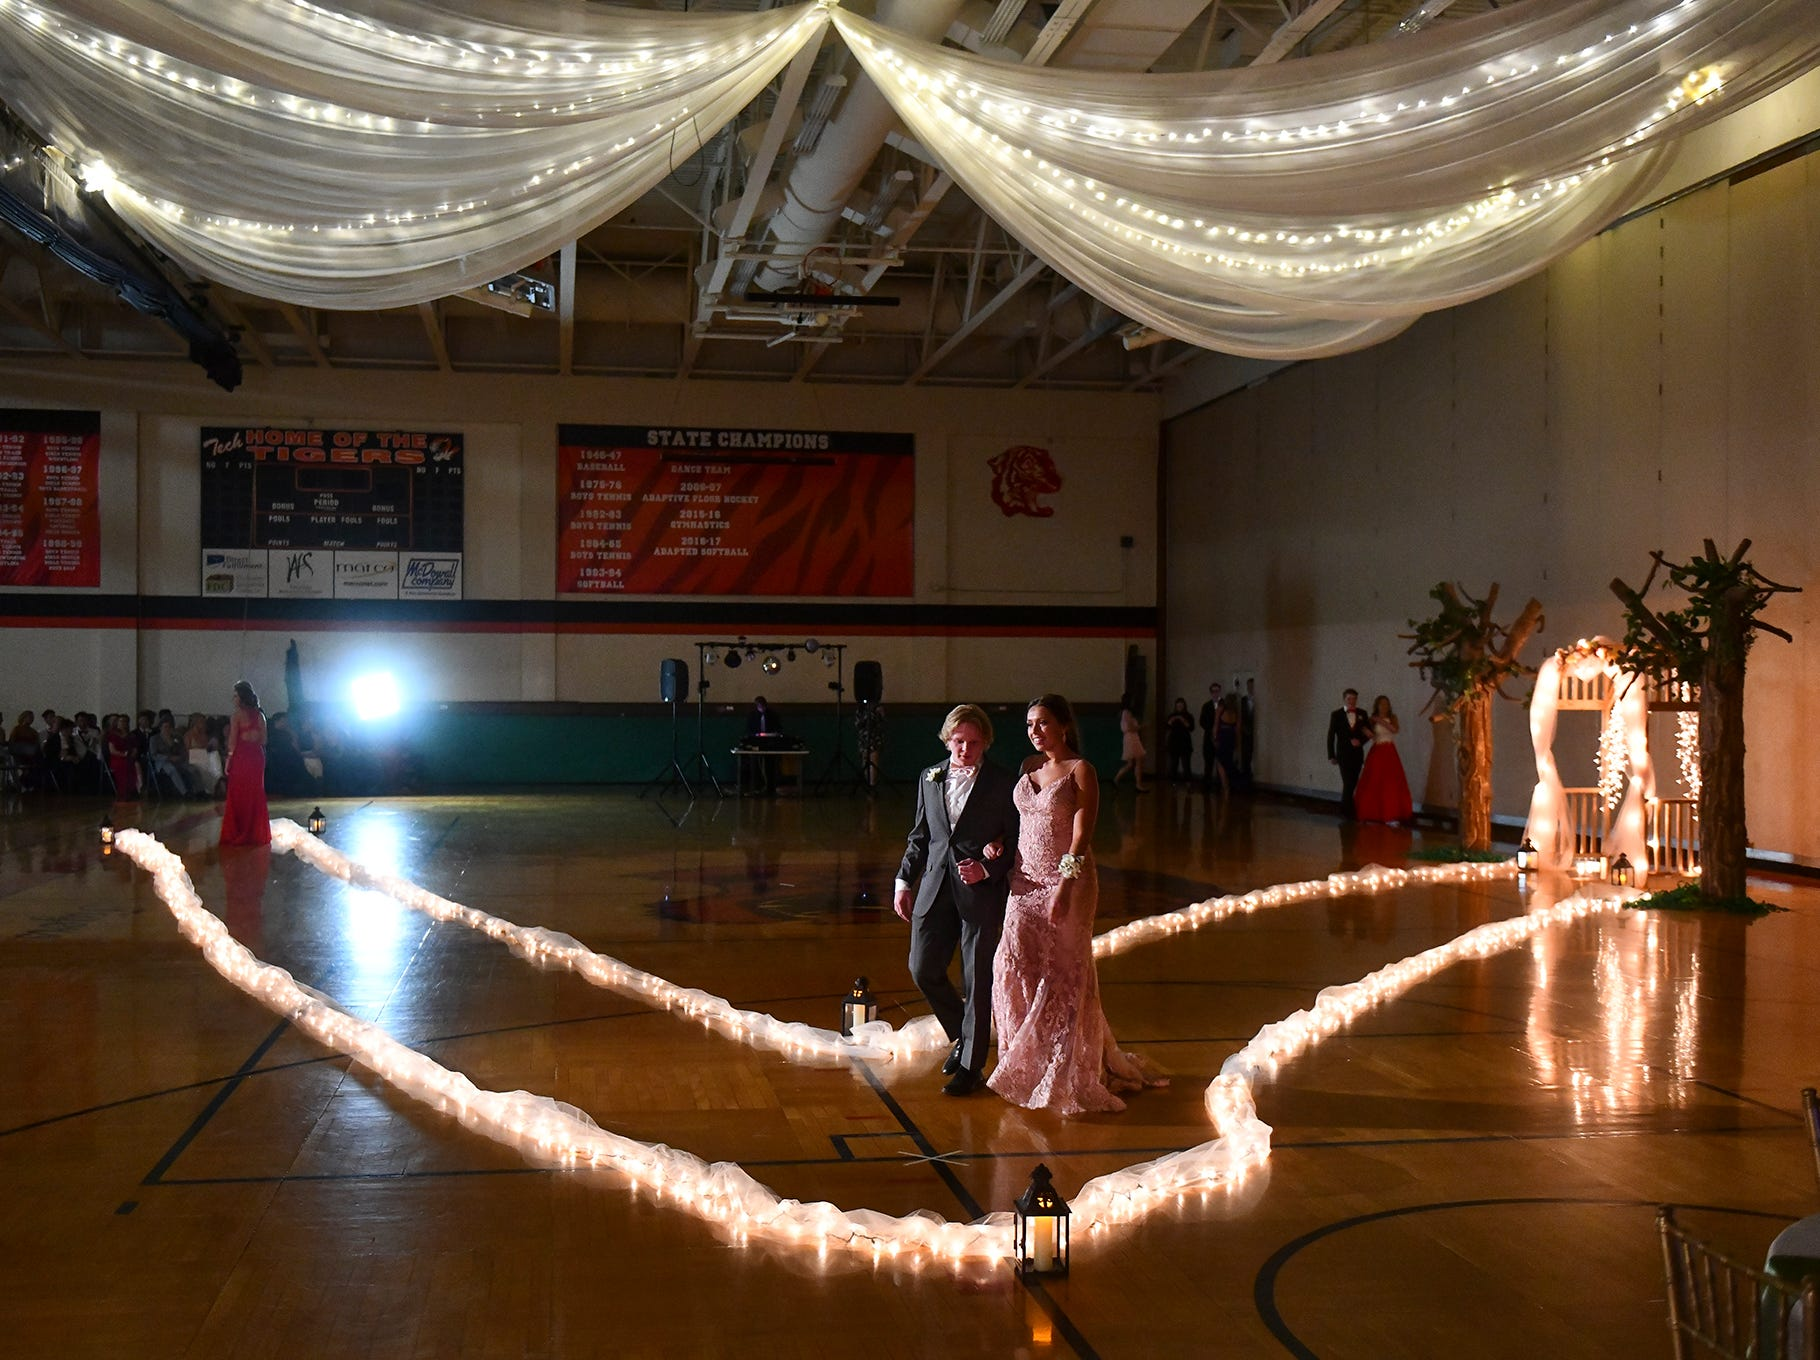 Couples take part in prom grand march Saturday, April 27, in theTech High School gymnasium in St. Cloud.